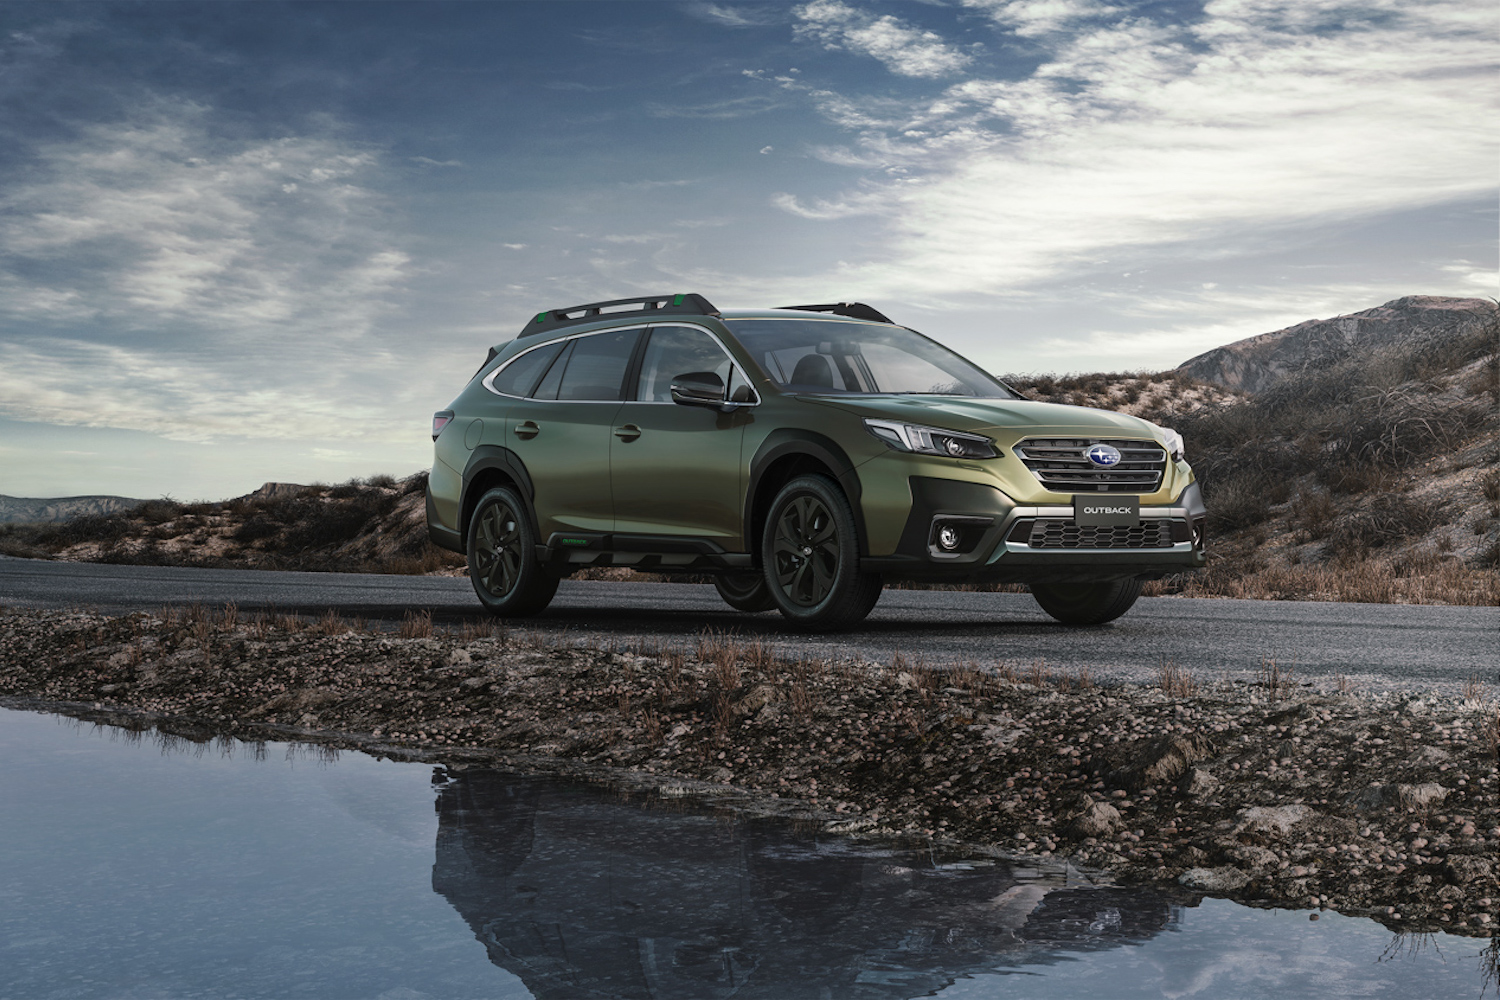 Car News | Subaru goes walkabout with the Outback | CompleteCar.ie